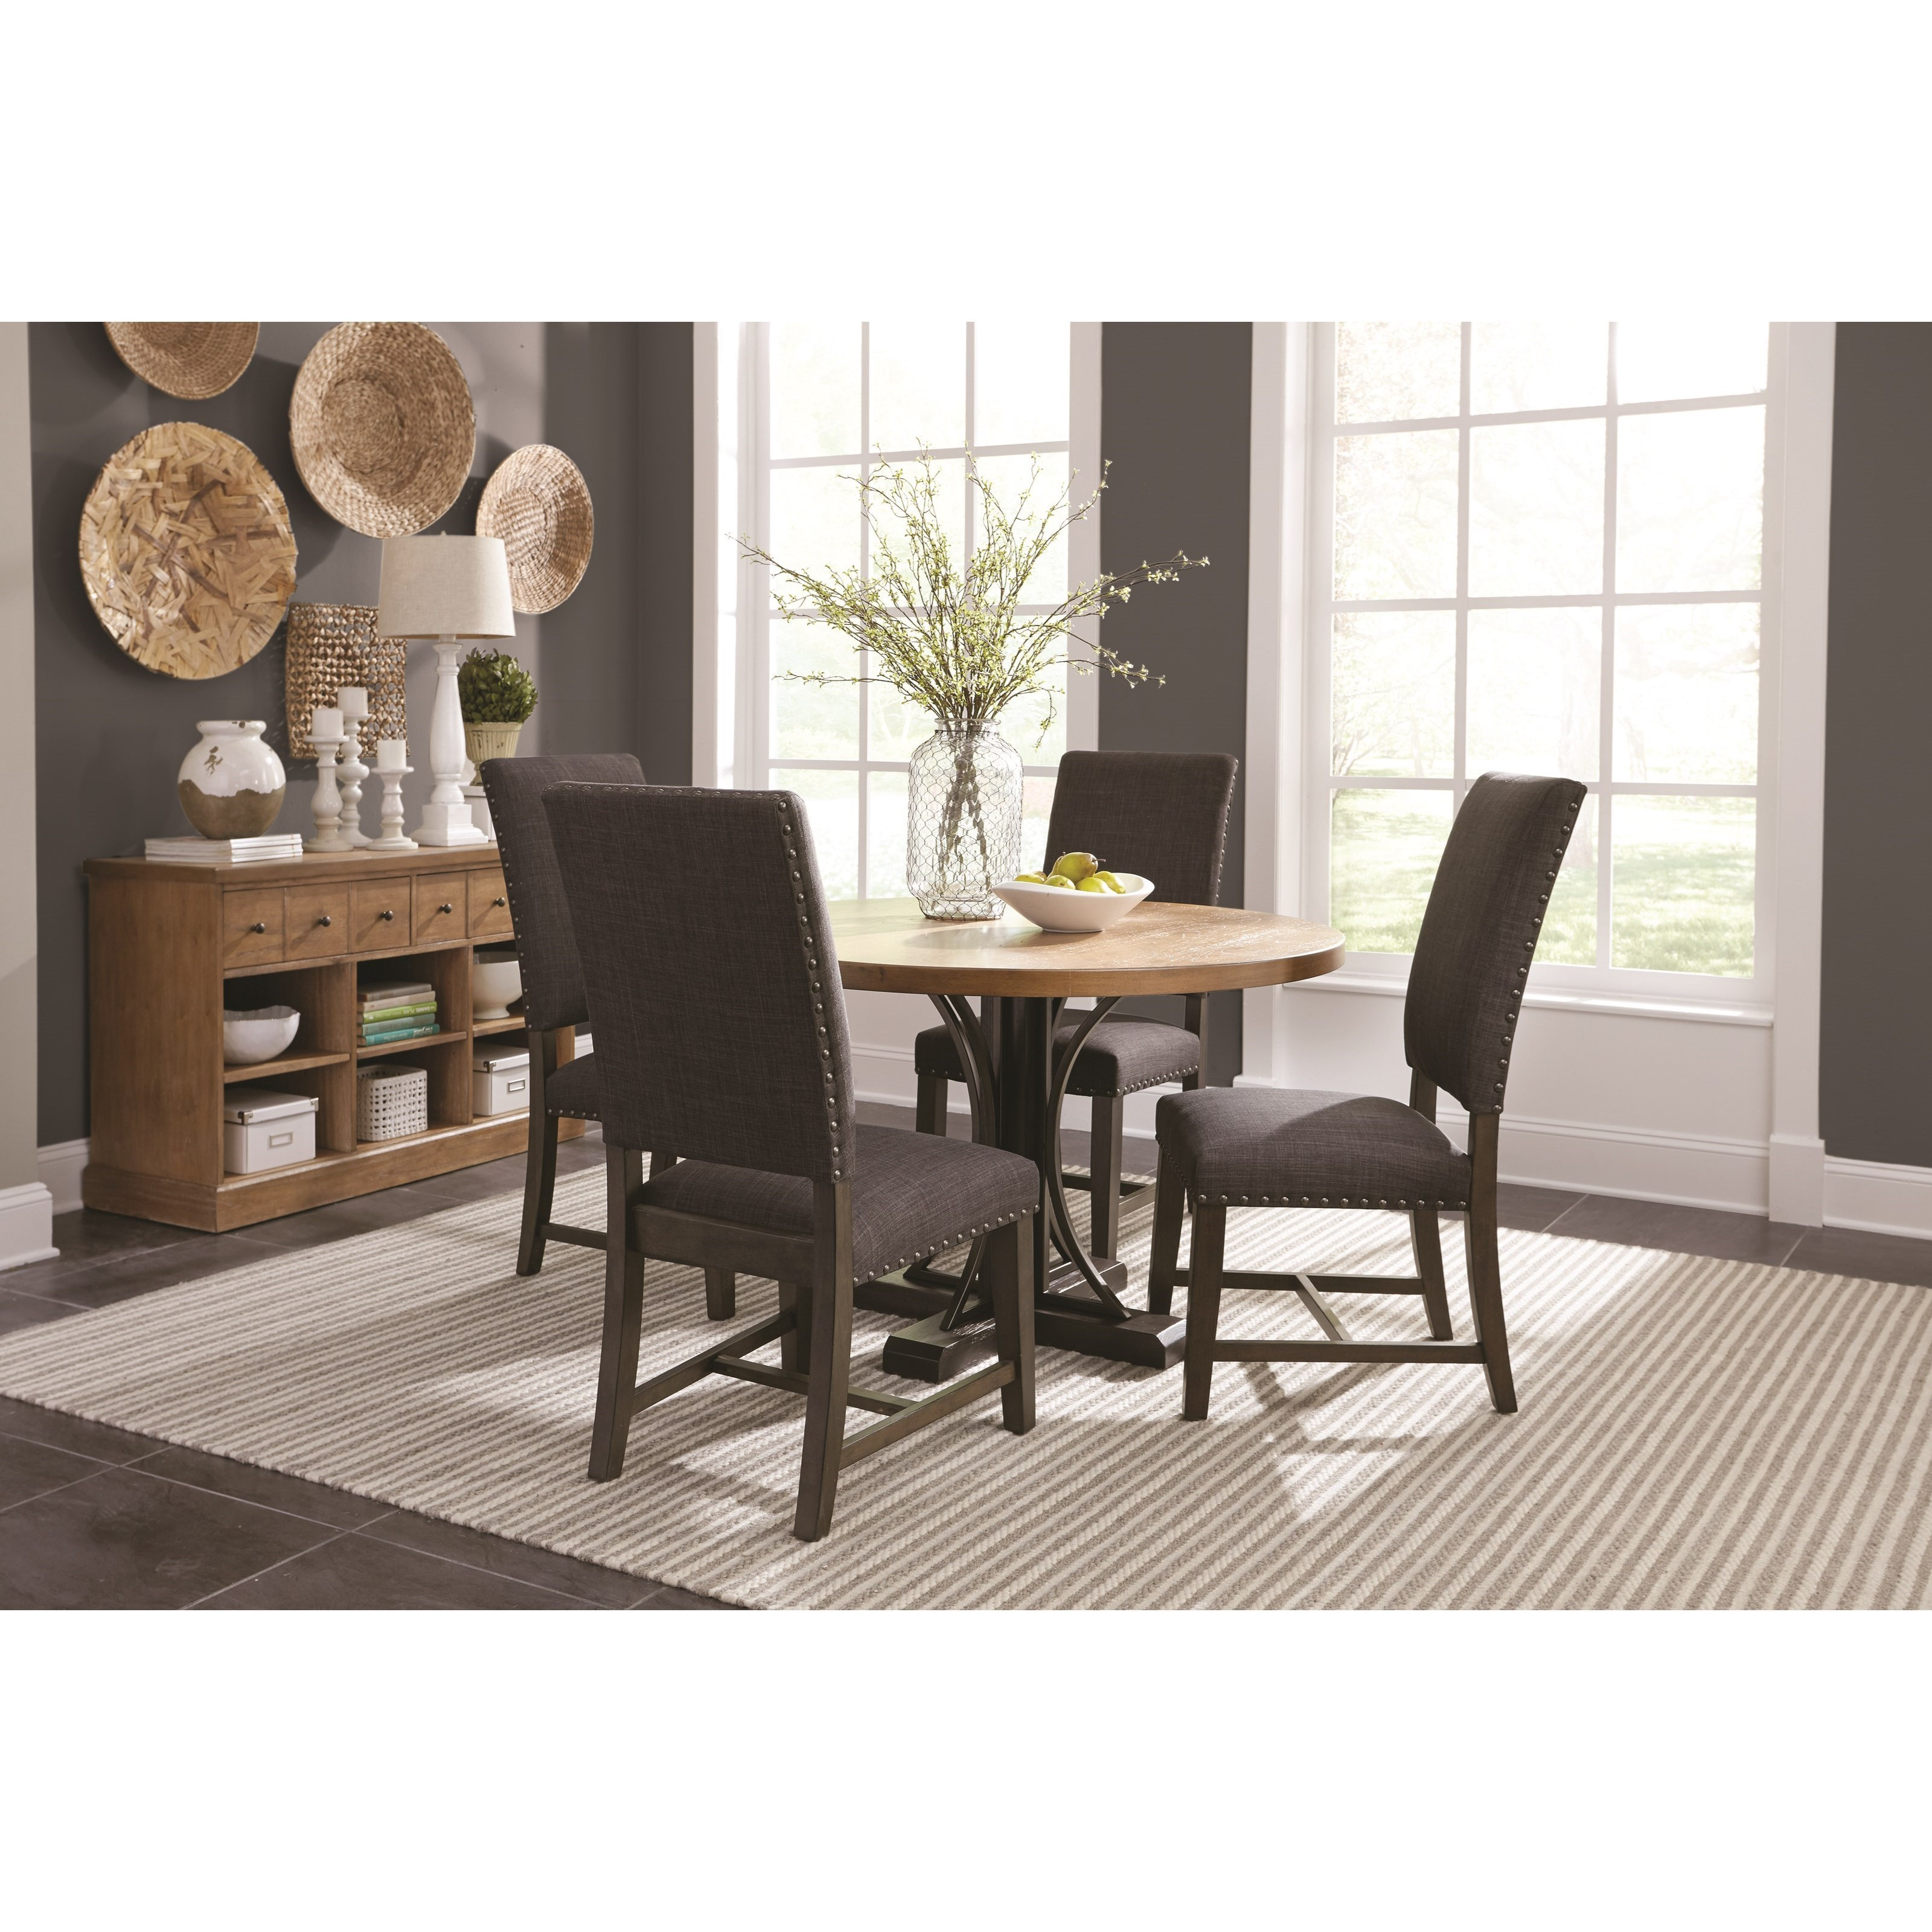 Delicieux Scott Living Bishop Dining Room Group With Parson Chairs And Round Table